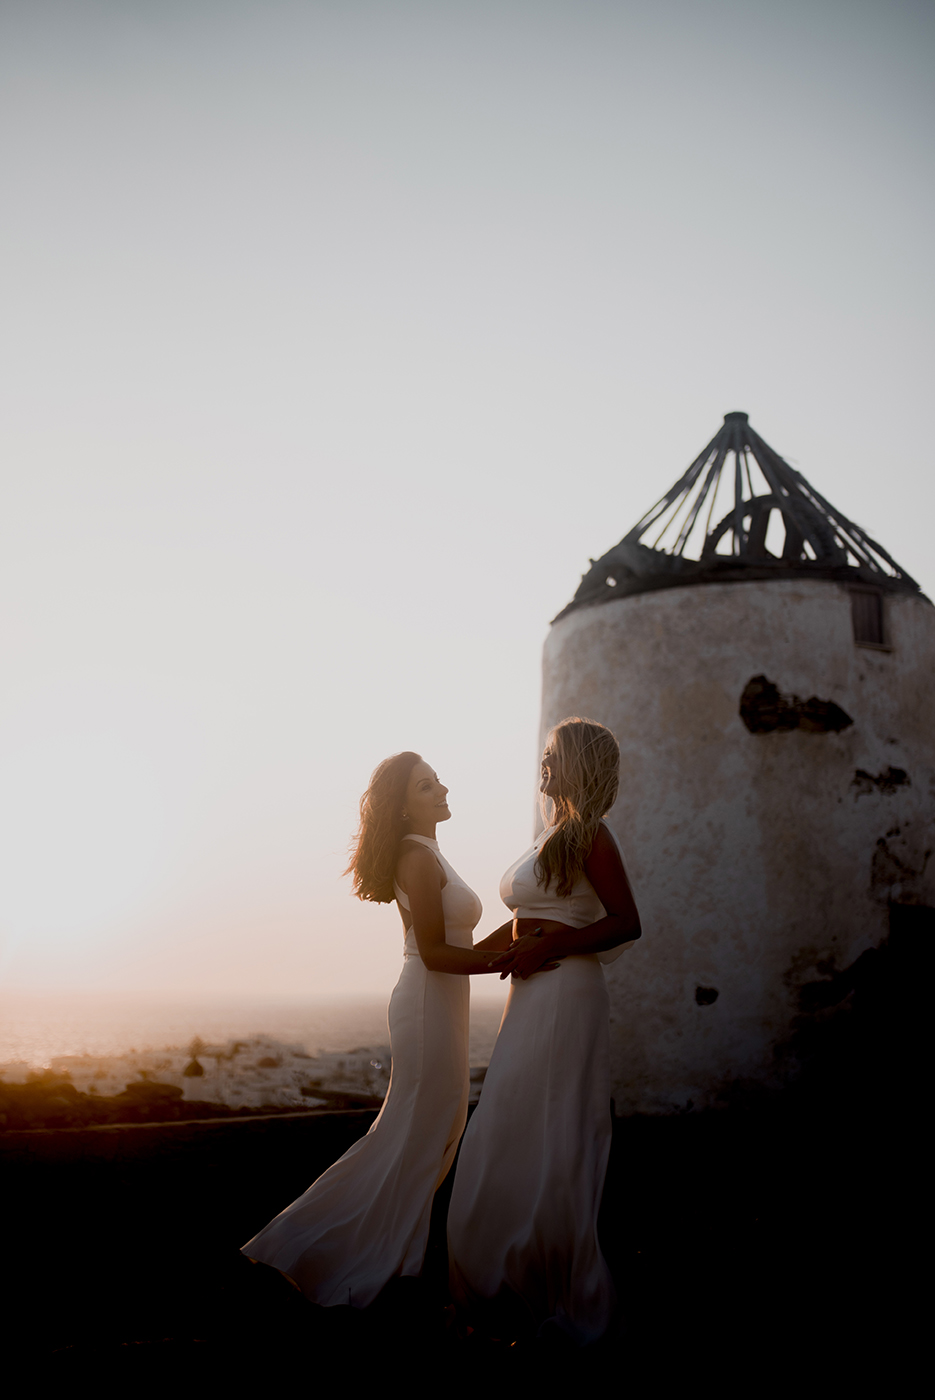 Kirill-Samarits-Wedding-Photography-Greece-AThens-Mykonos-Santorini-Same-Sex-Wedding-Photographer-Candice-Mykonos (12)